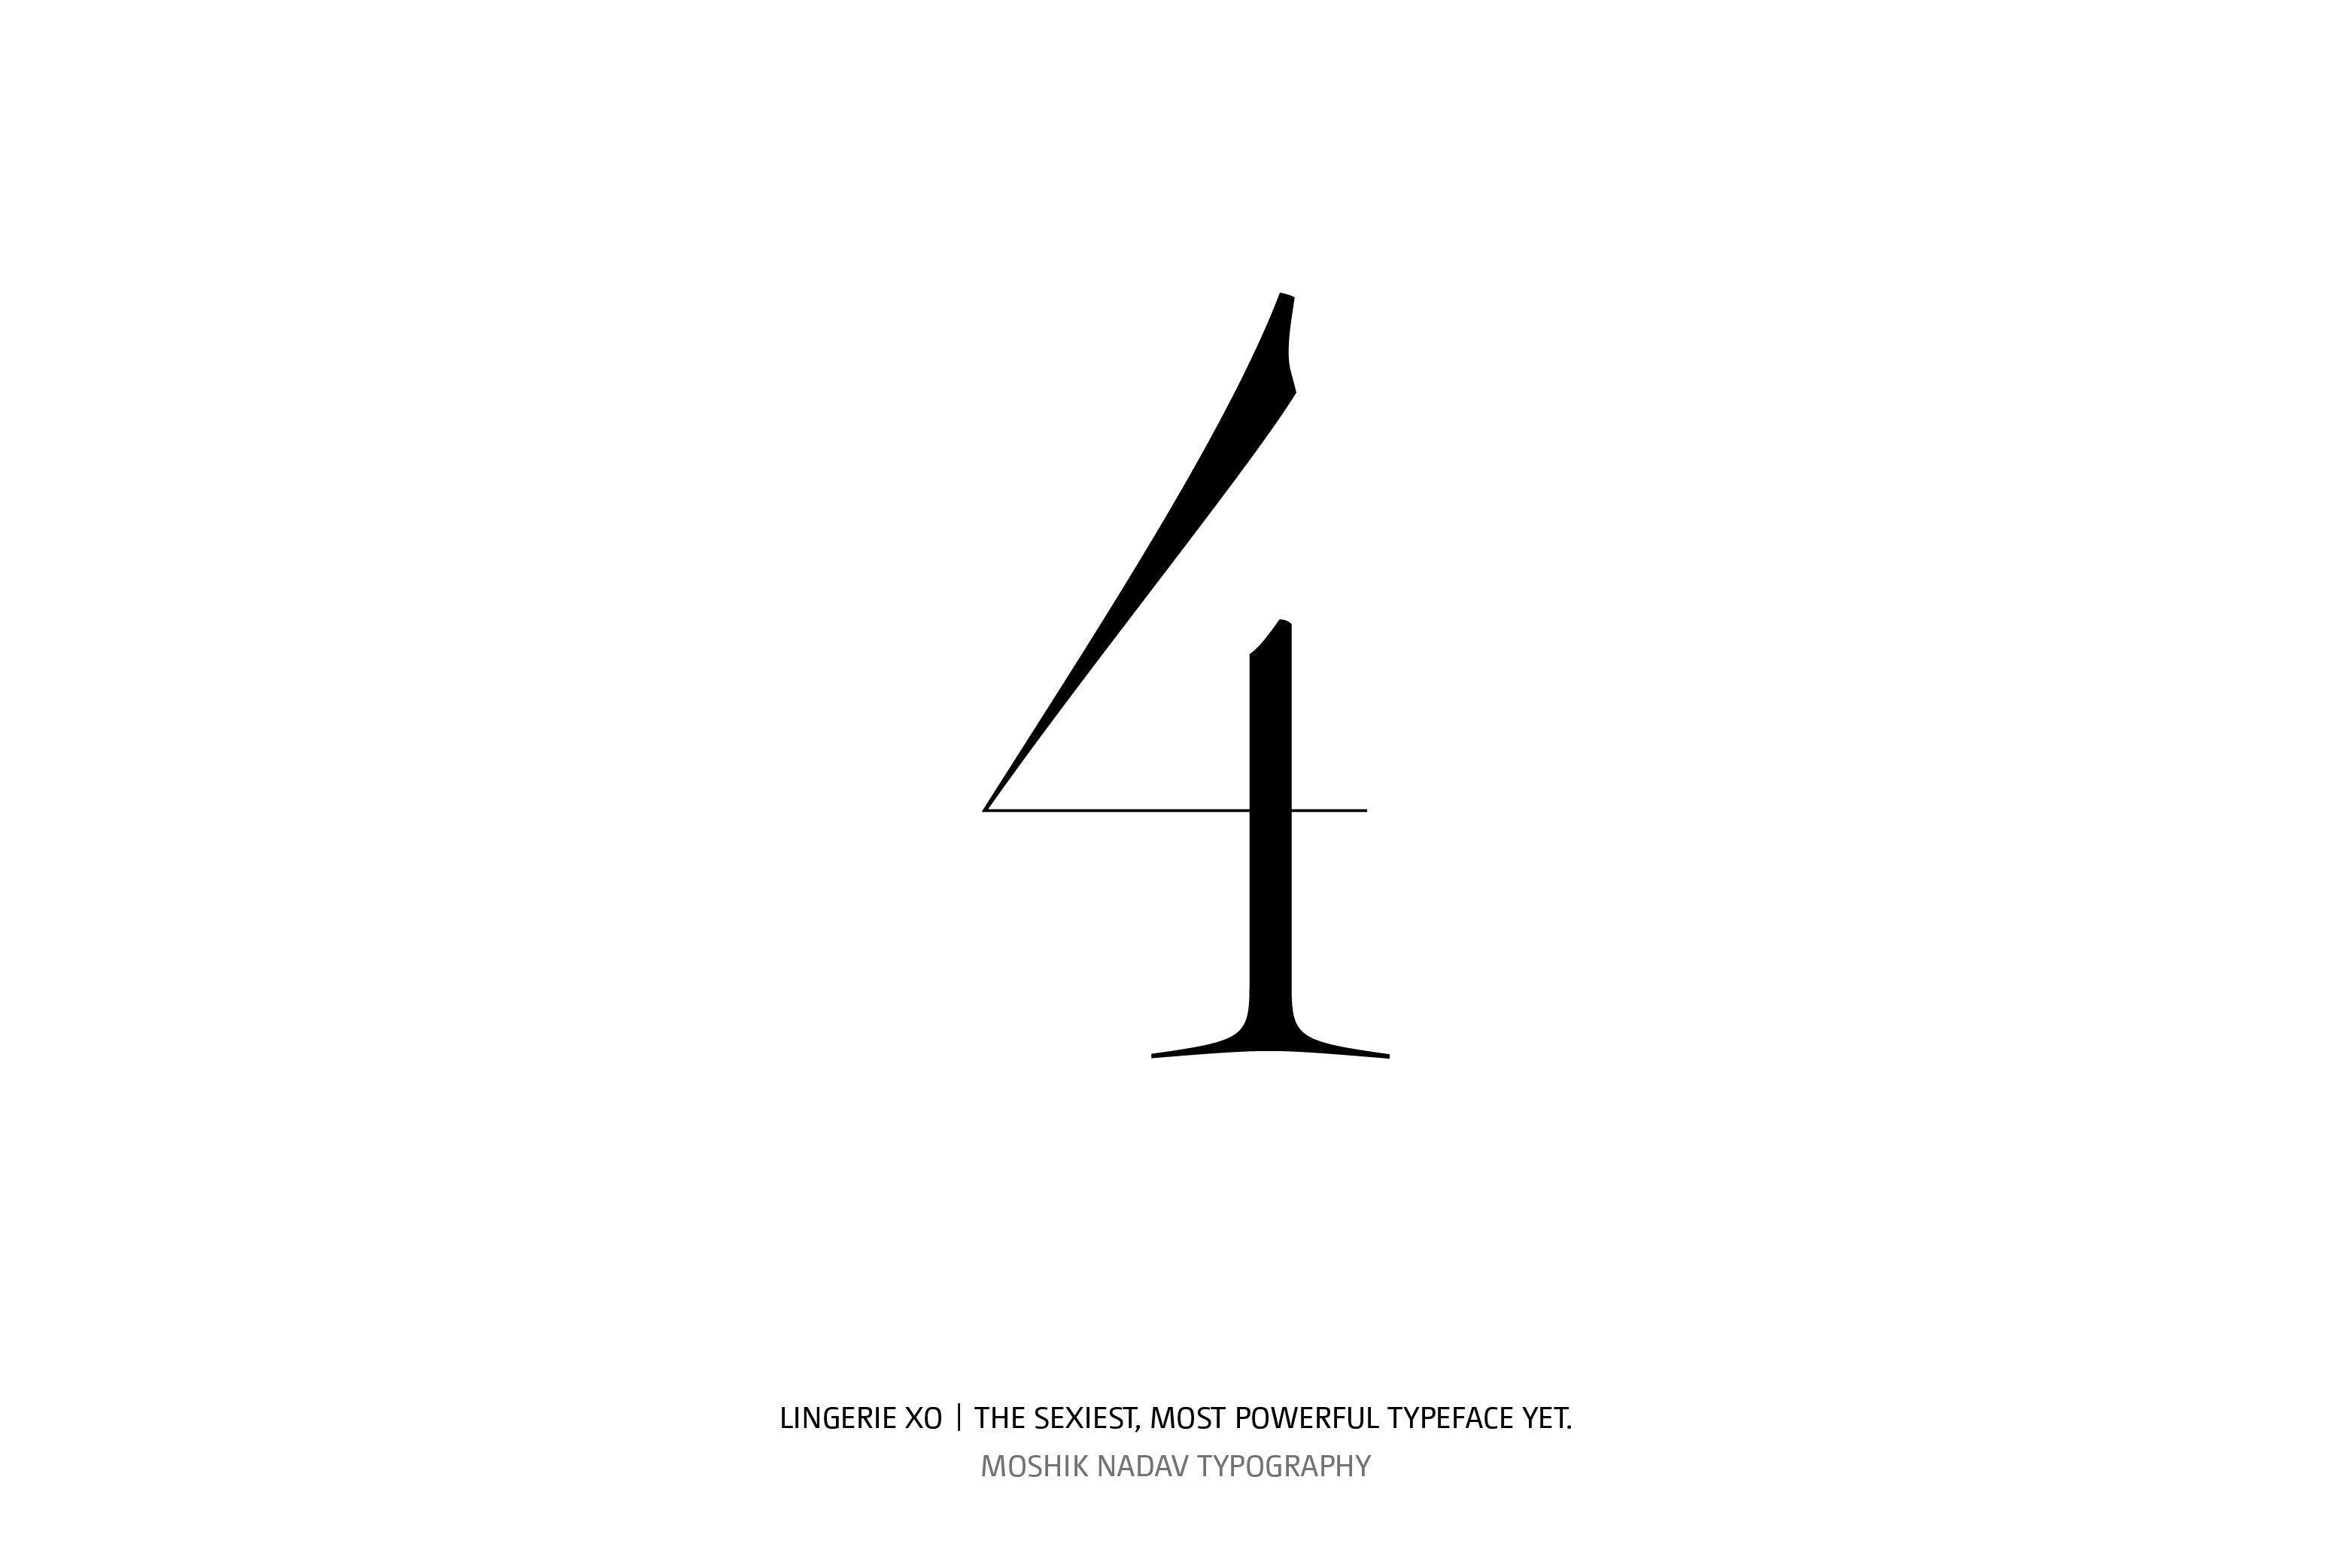 Lingerie XO Super Sexy Typeface - Moshik Nadav Typography number four